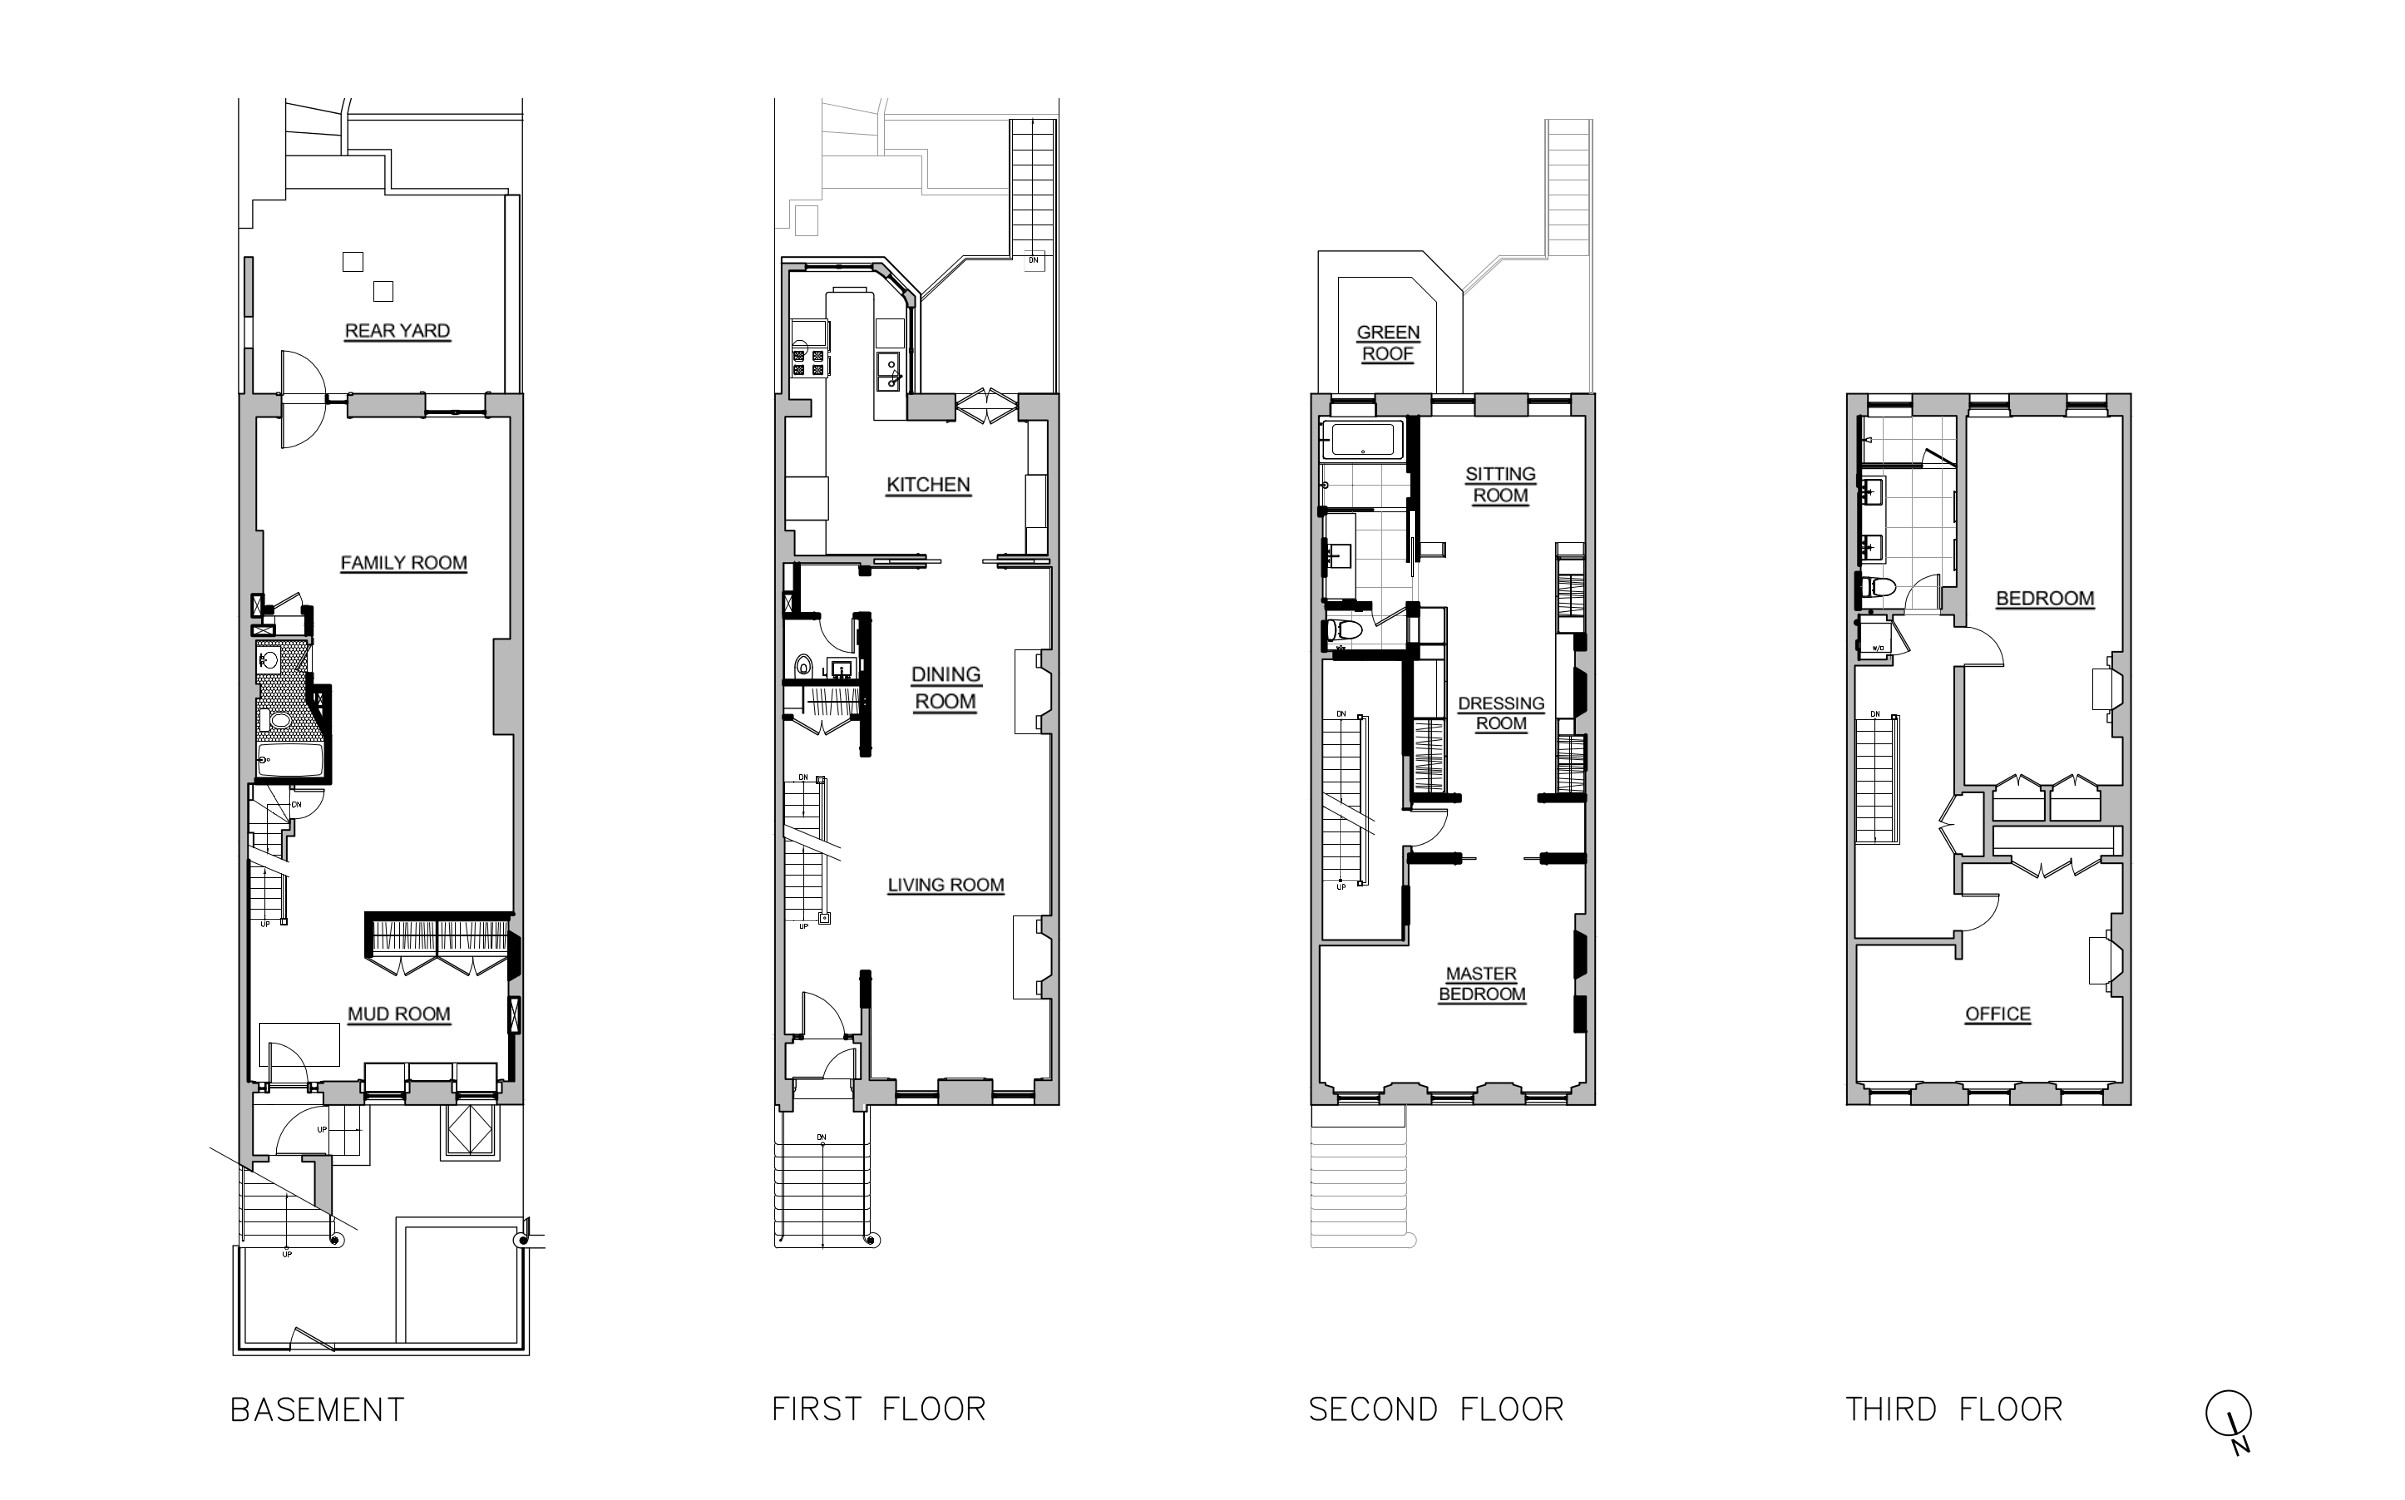 Floor plans of a Brooklyn Heights row house.